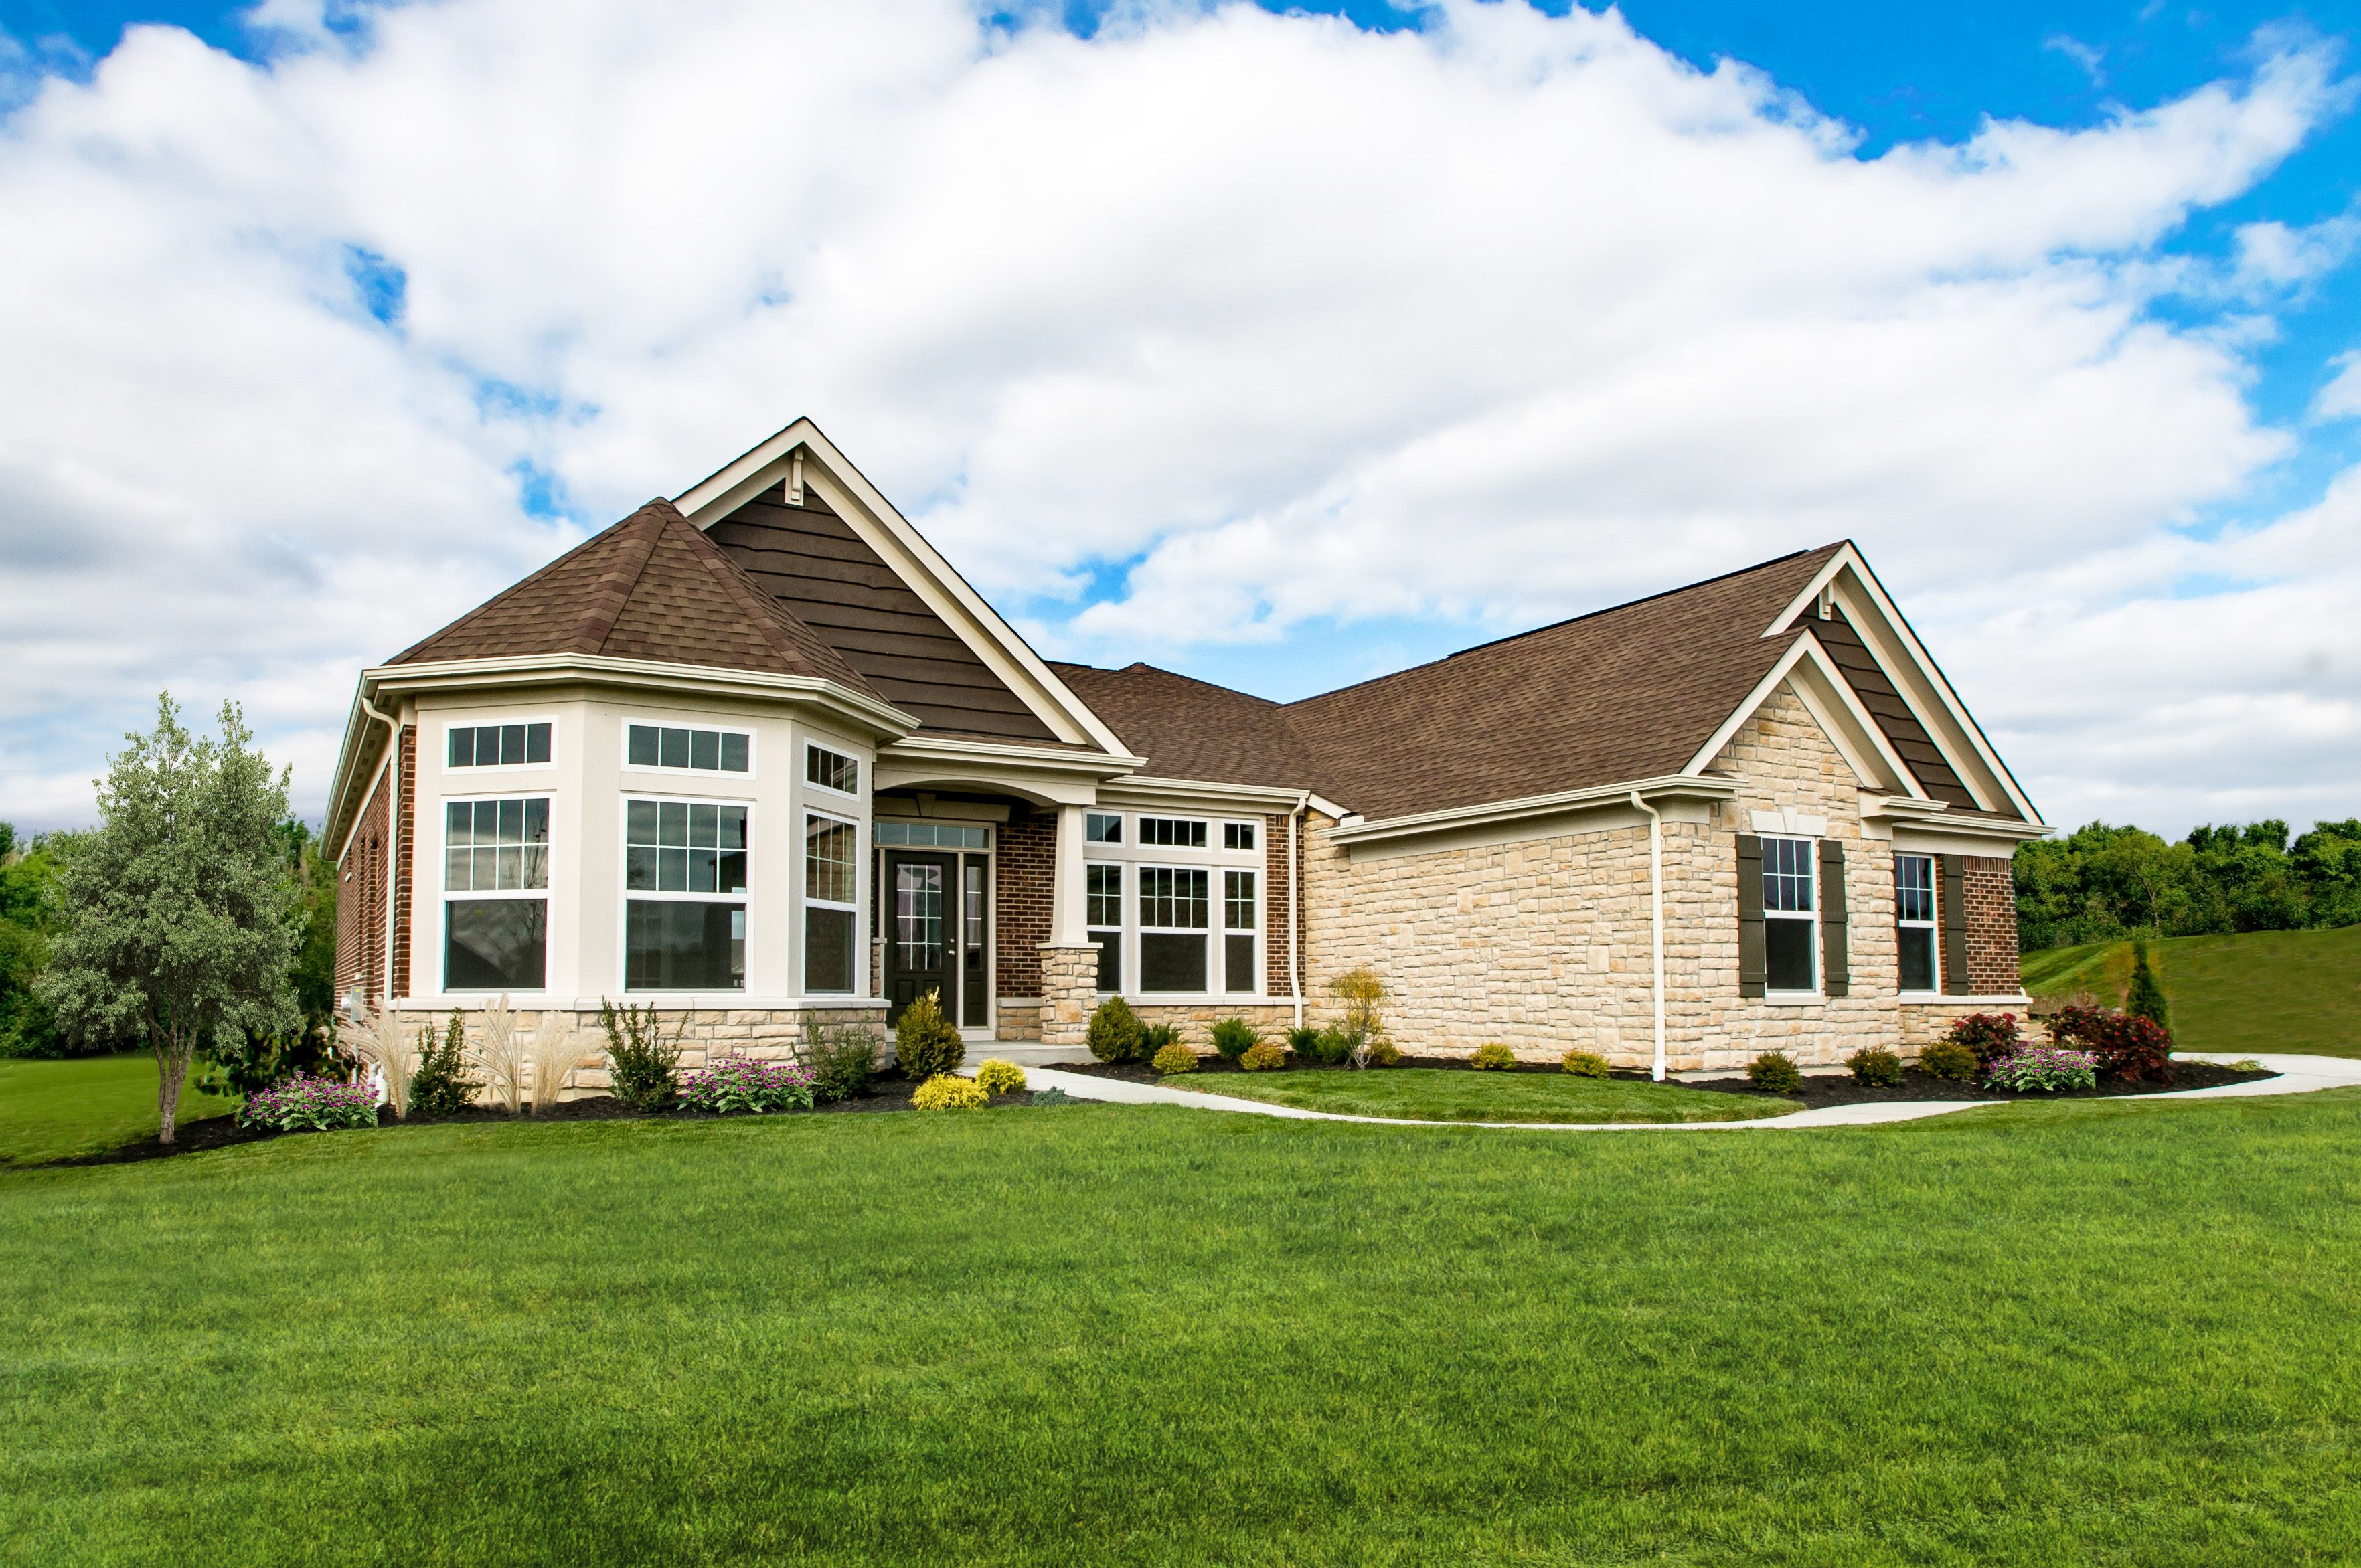 New Construction Homes in Cincinnati, OH | 2,597 Homes